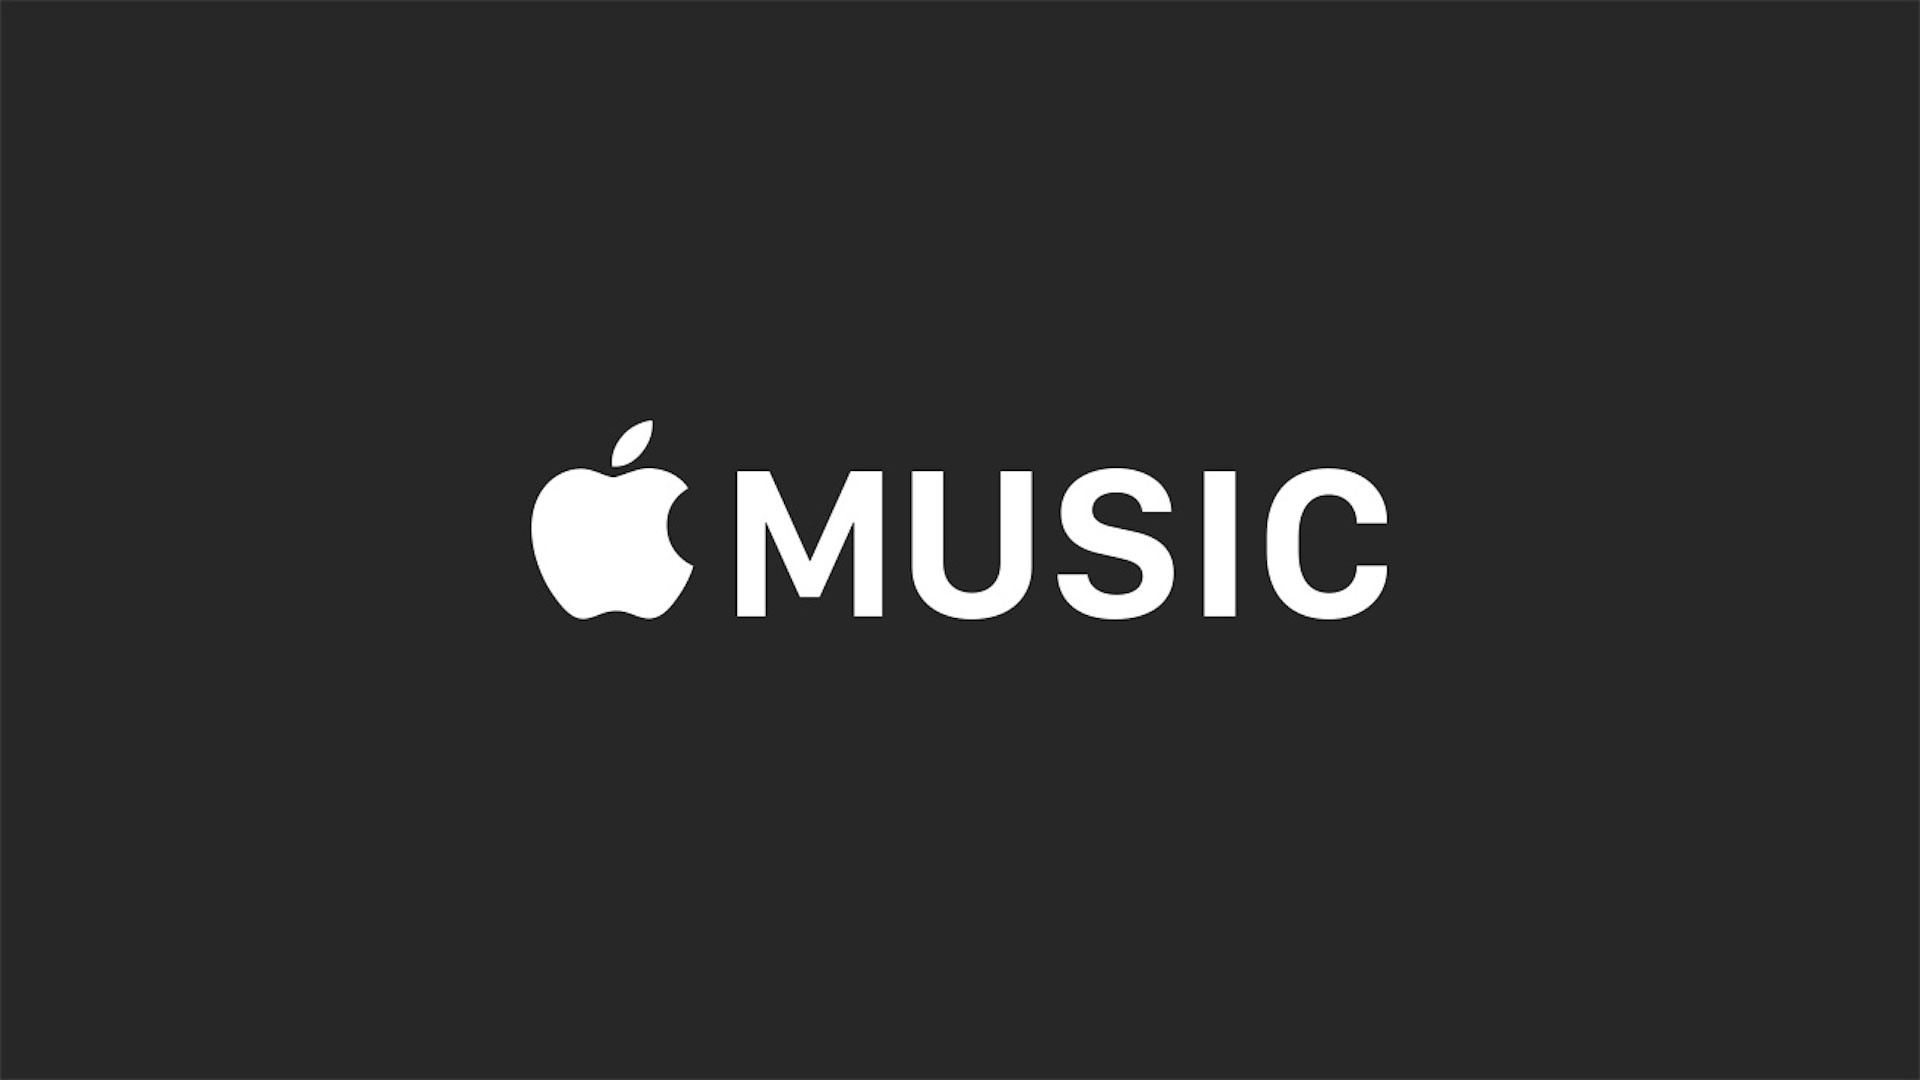 1920x1080 hd pics photos attractive apple logo music beautiful hd quality desktop  background wallpaper